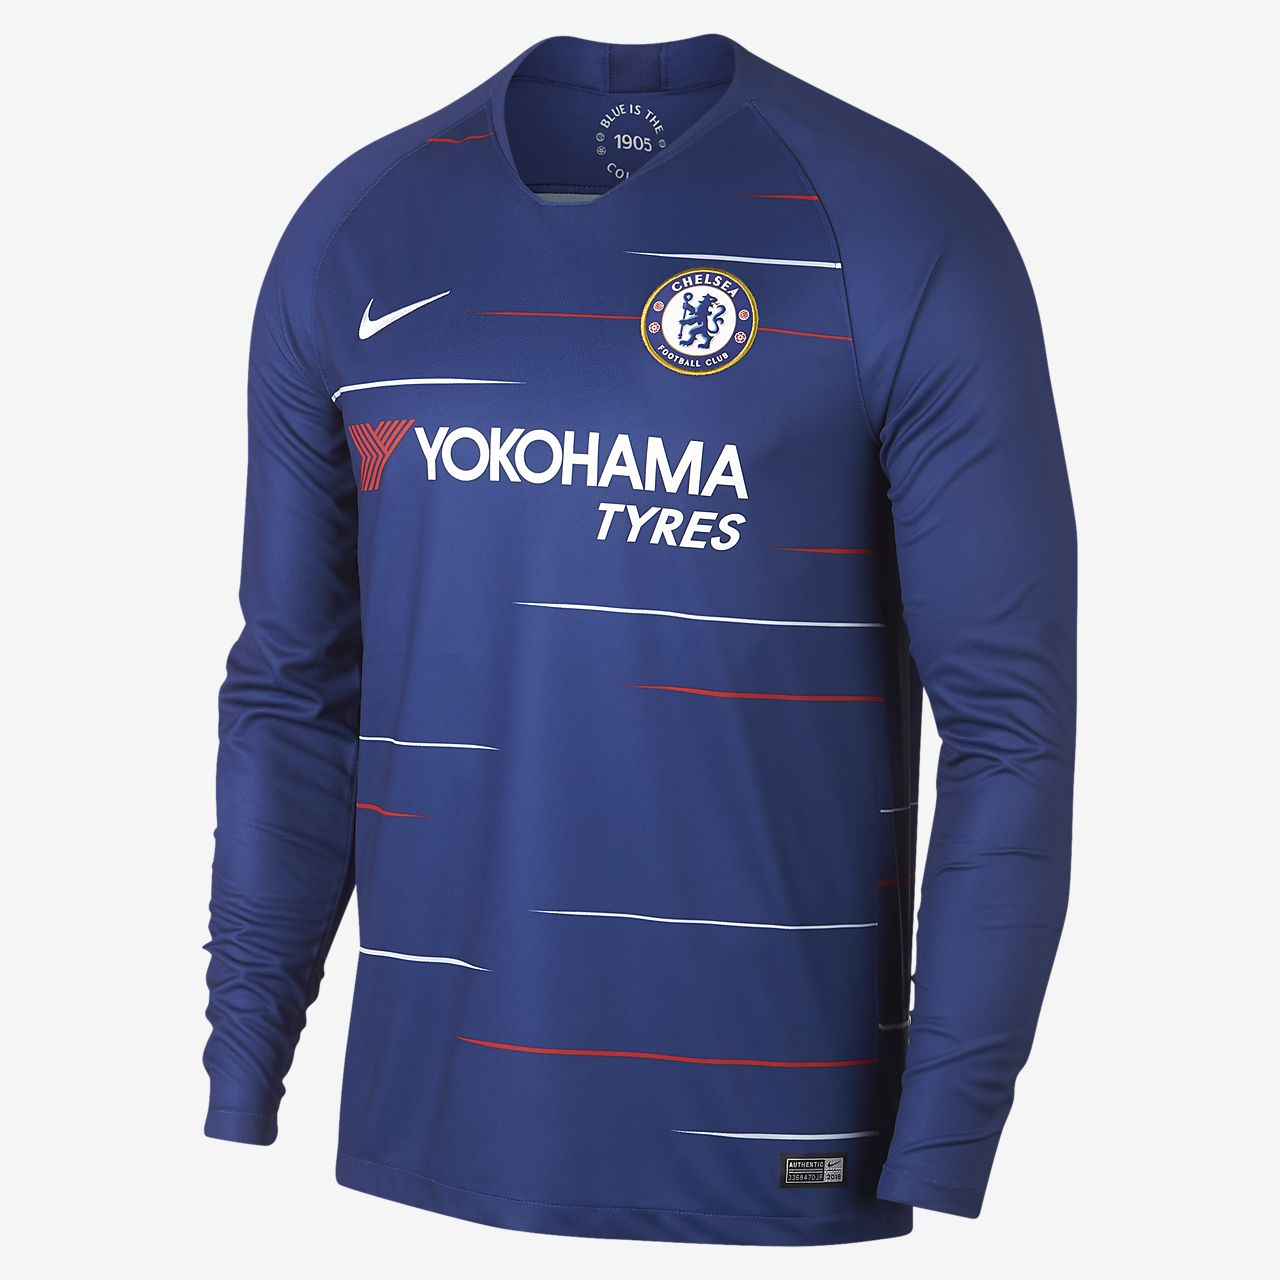 6119932af18 2018/19 Chelsea FC Stadium Home Men's Long-Sleeve Football Shirt ...